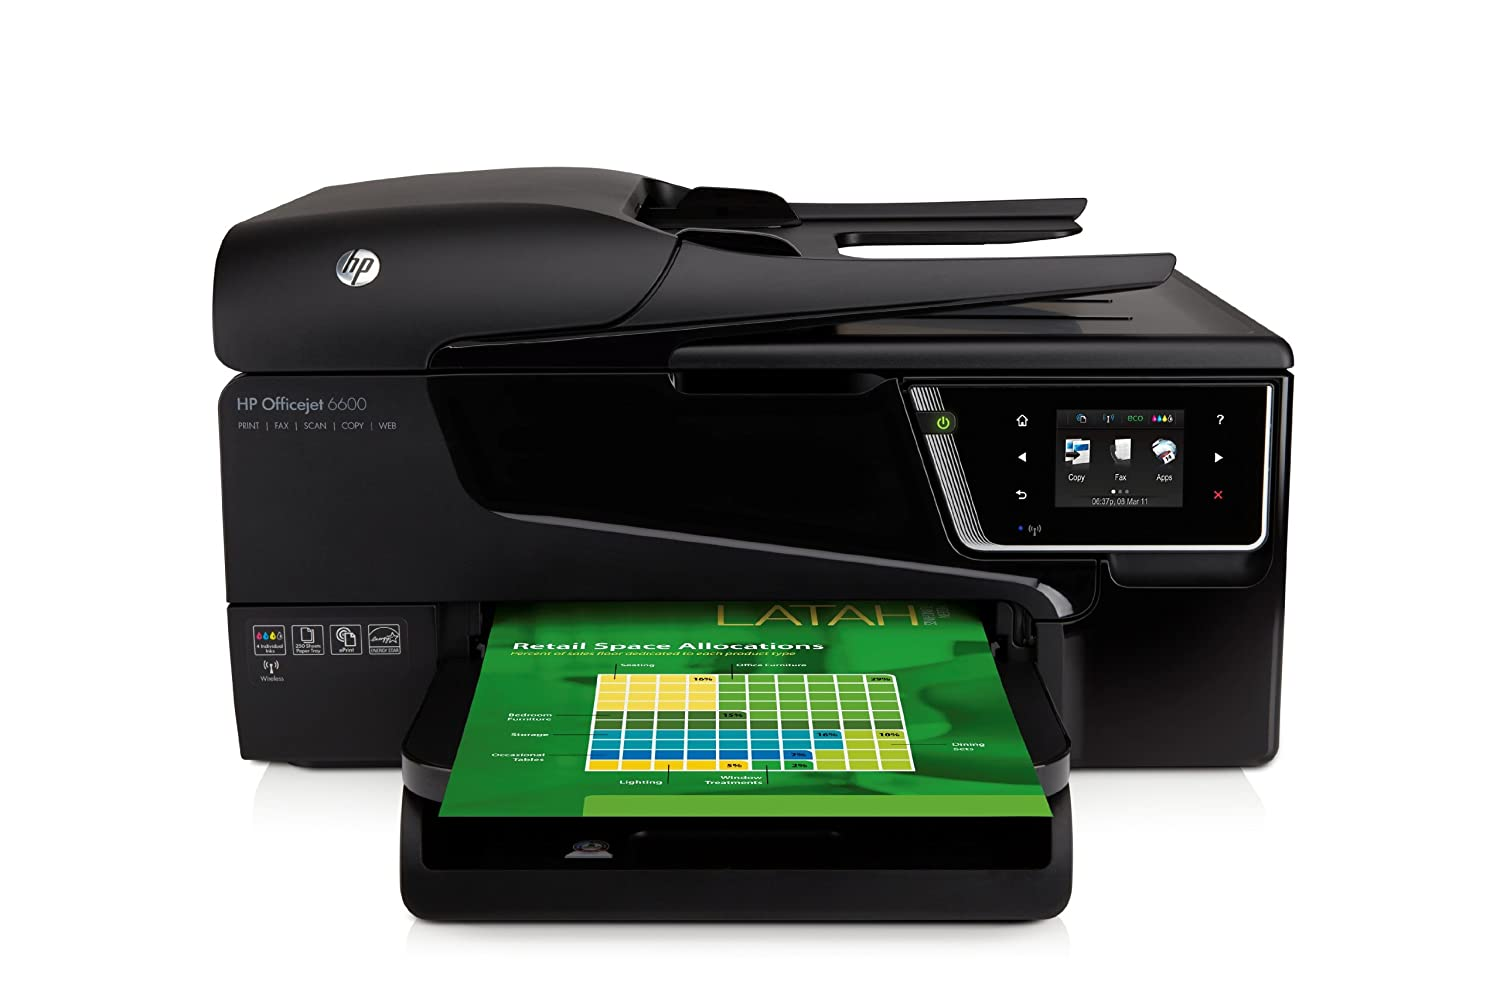 Hp officejet 6600 e all in one wireless color photo for Hp all in one printer with document feeder